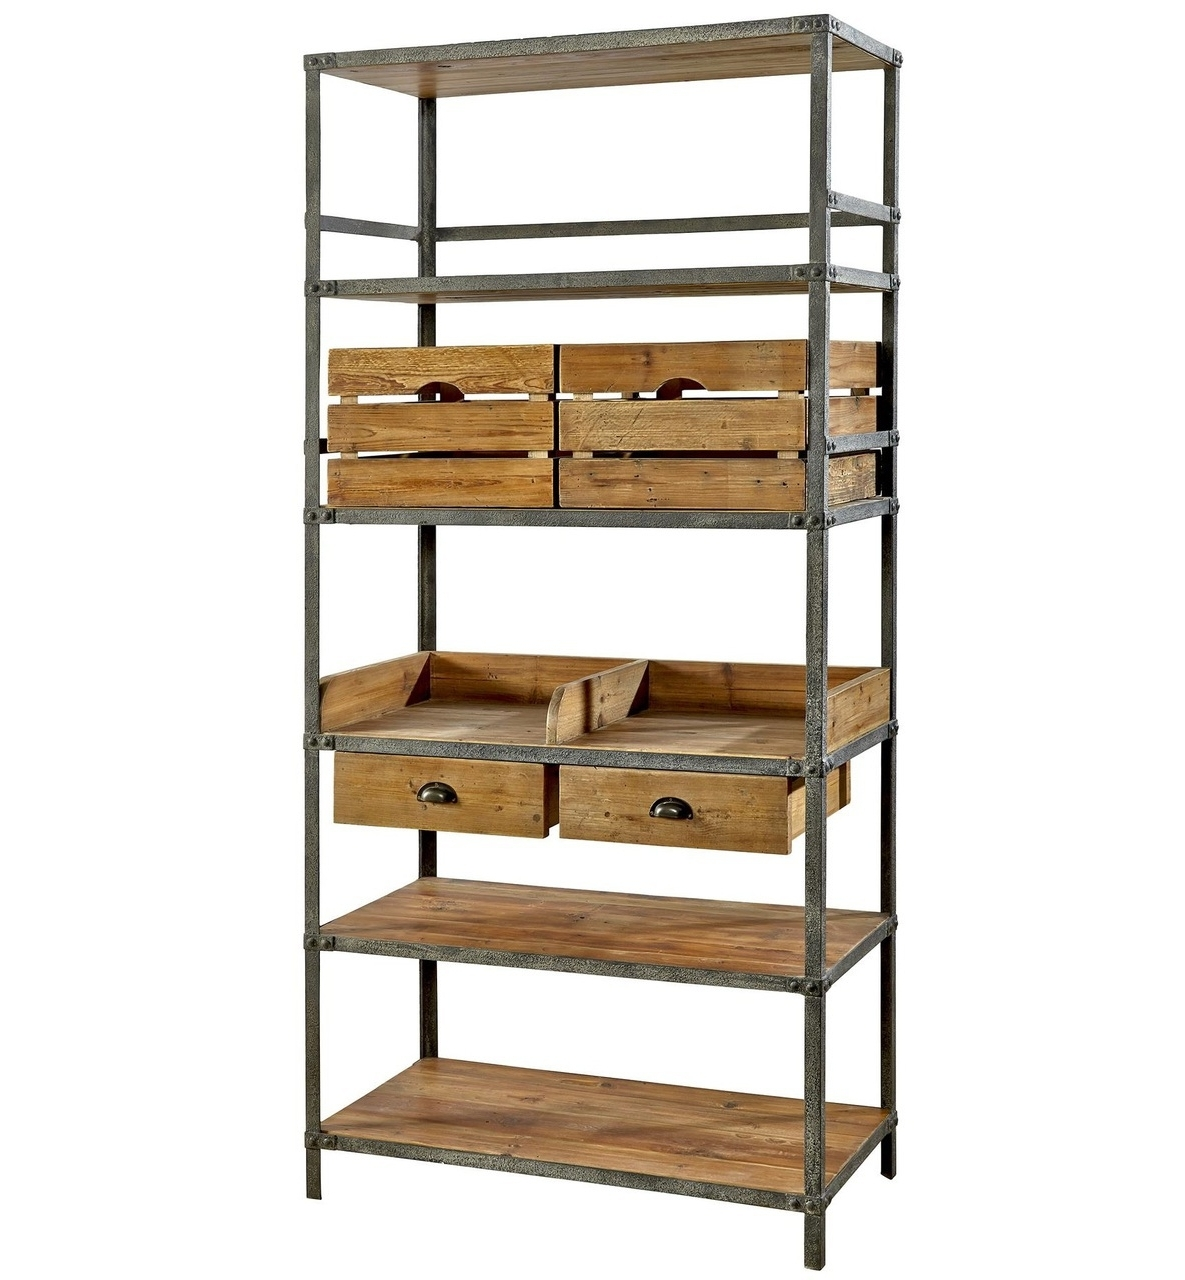 Iron And Wood Bookcases Within Well Known Bookcases Ideas: Bookcases Wood Metal And Glass Crate And Barrel (View 8 of 15)